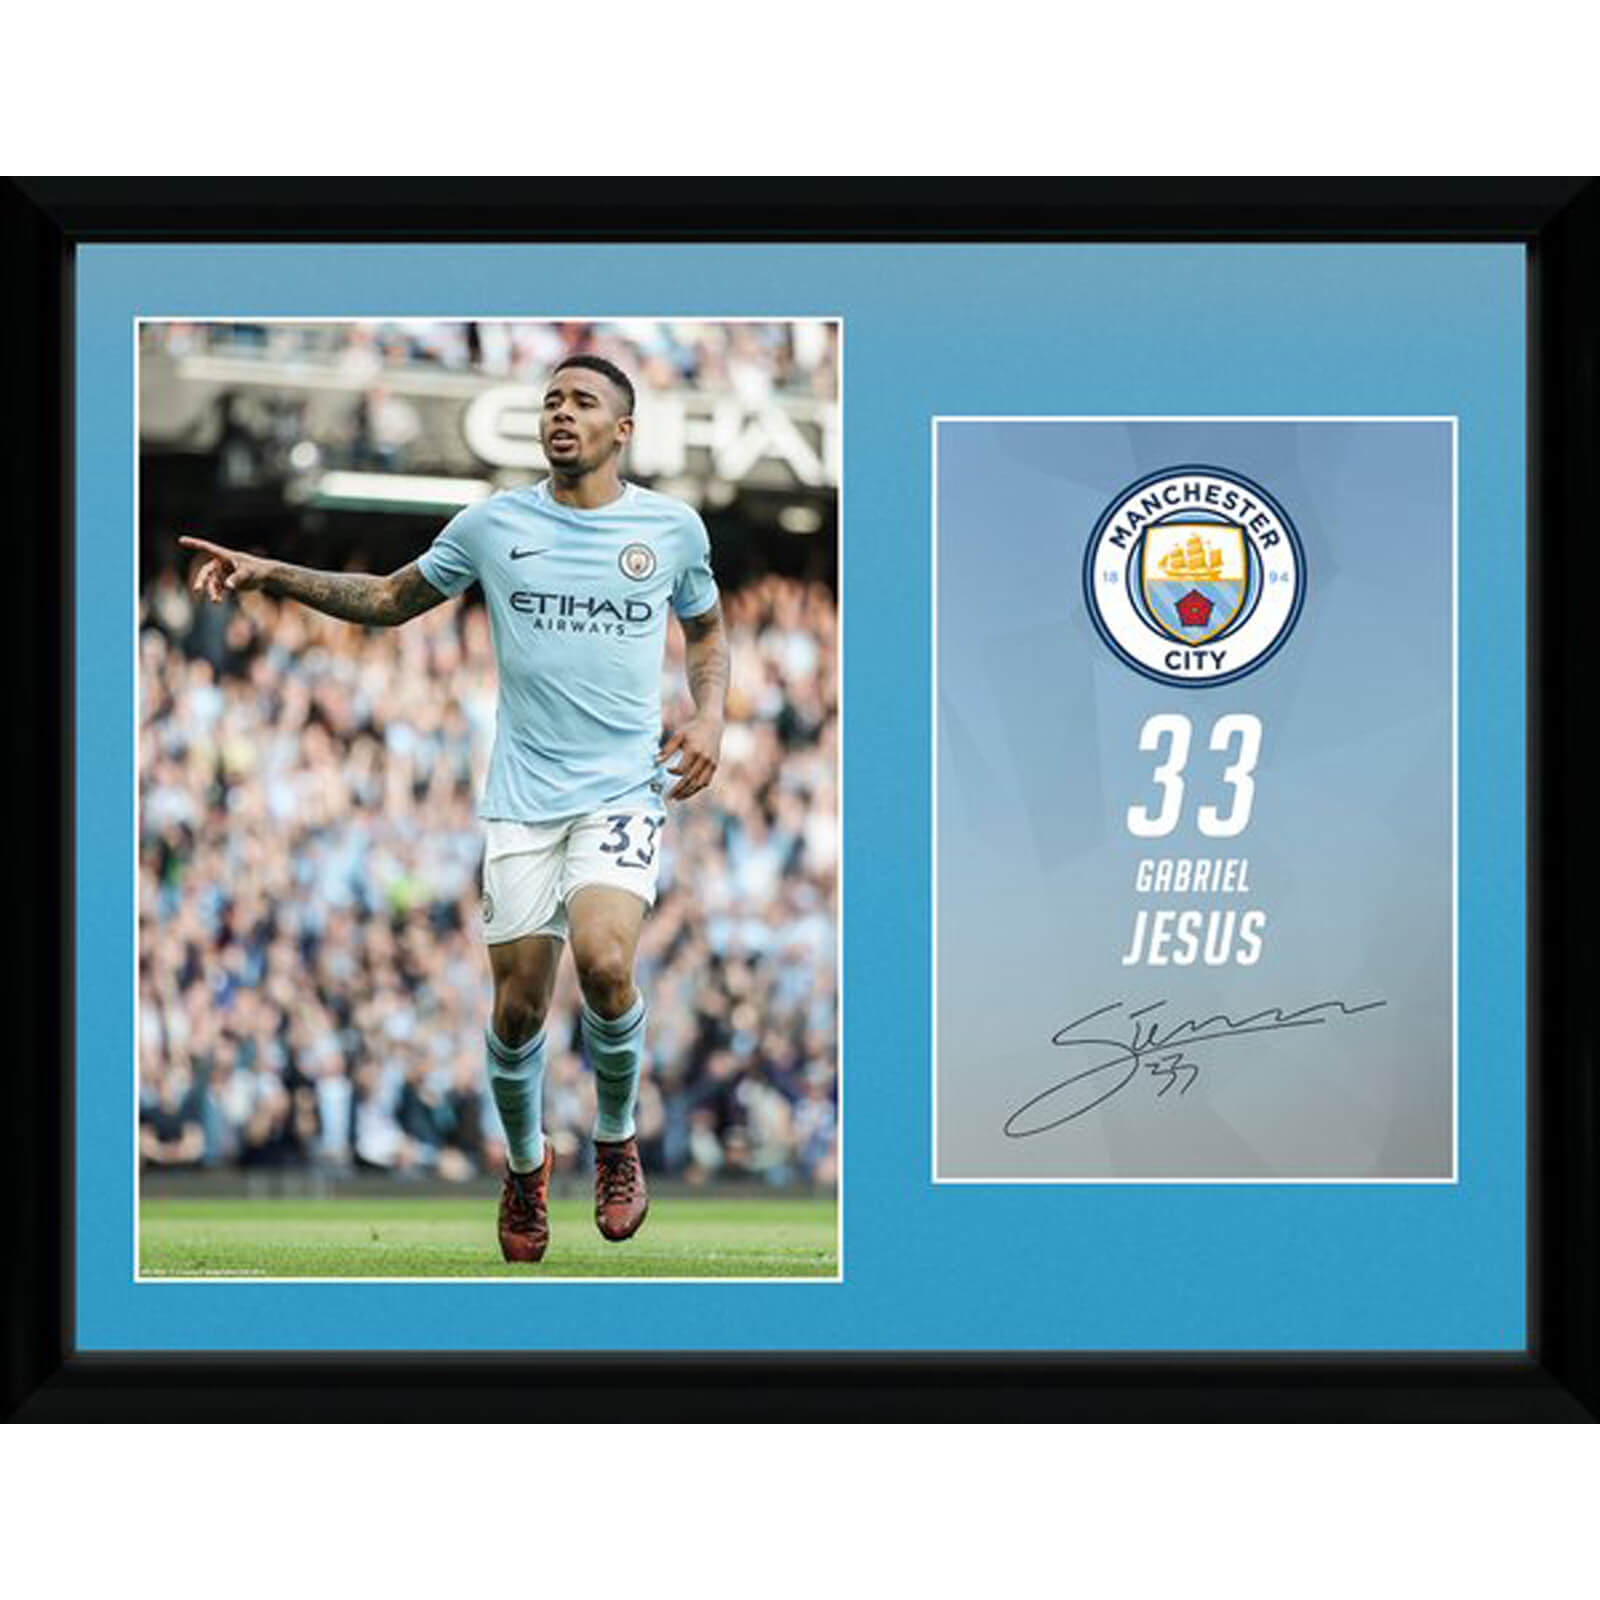 Manchester City Jesus 17/18 12 x 16 Inches Framed Photograph